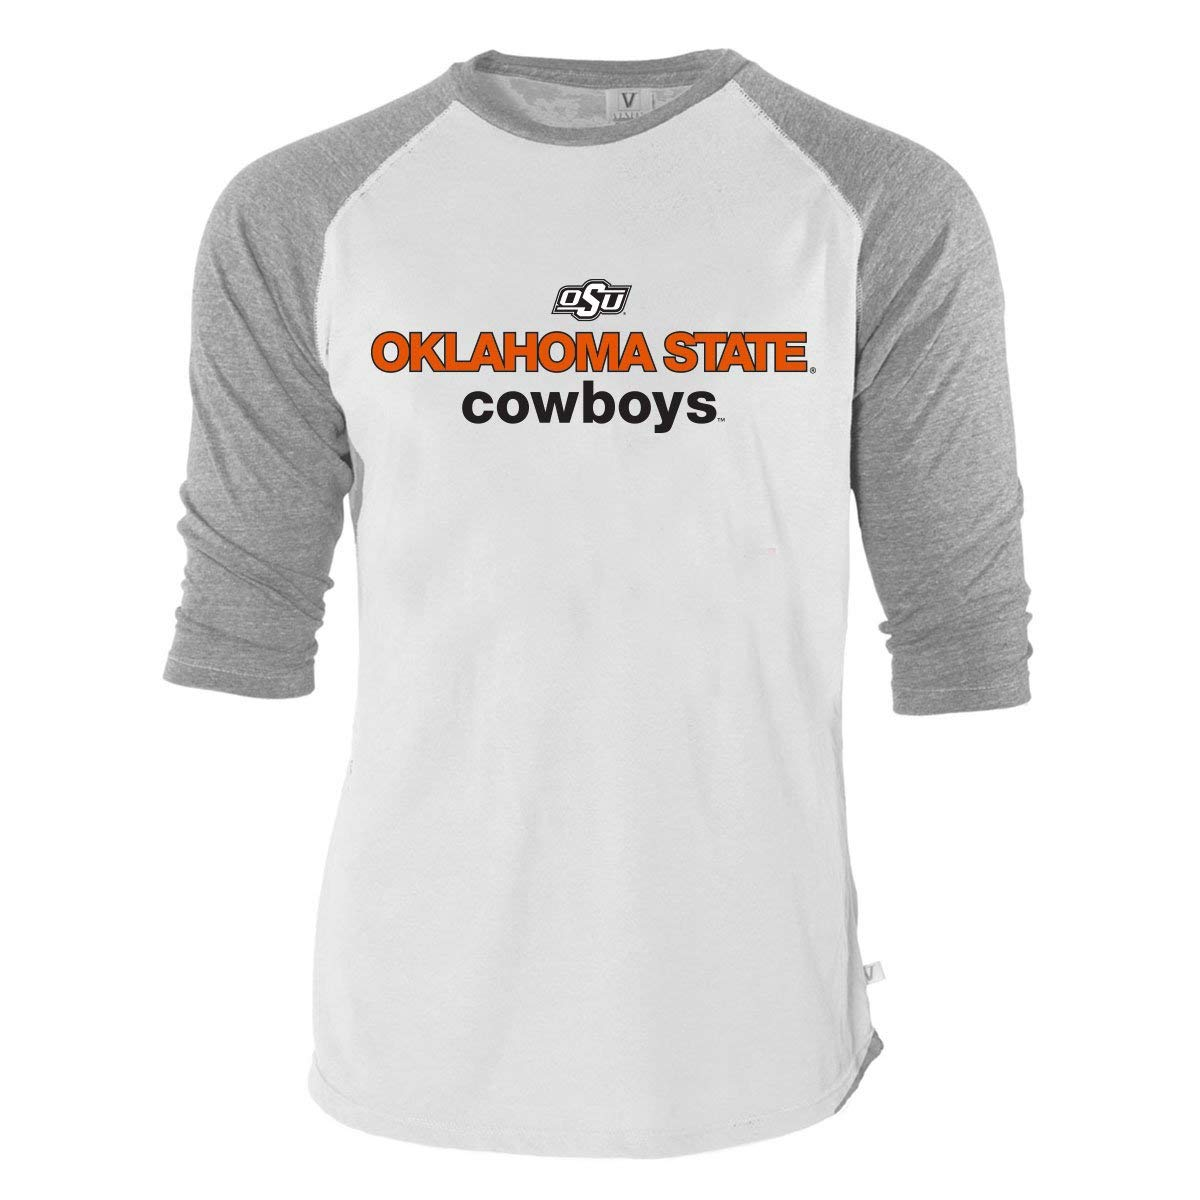 Amazon.com  Official NCAA Oklahoma State University Cowboys OKState Pistol  Pete OSU Women s Unisex Tri-Blend Baseball Raglan Tee  Clothing 1f11bd350